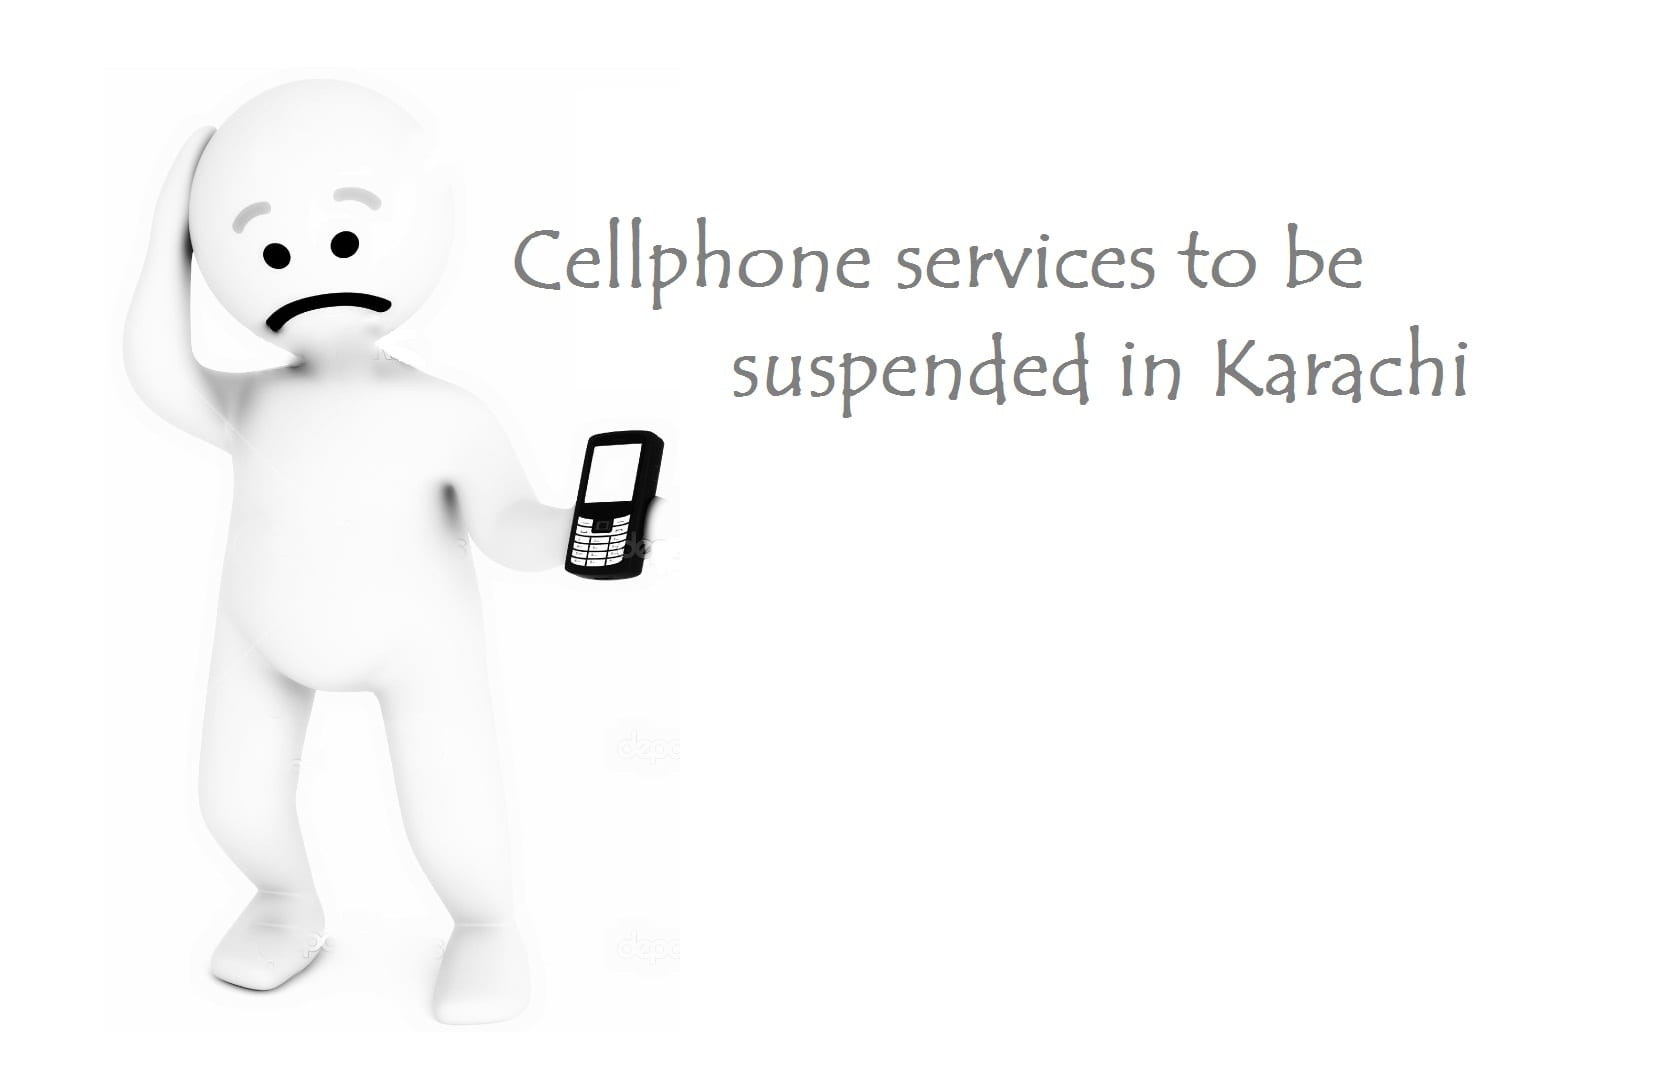 Cellphone services to be suspended in Karachi